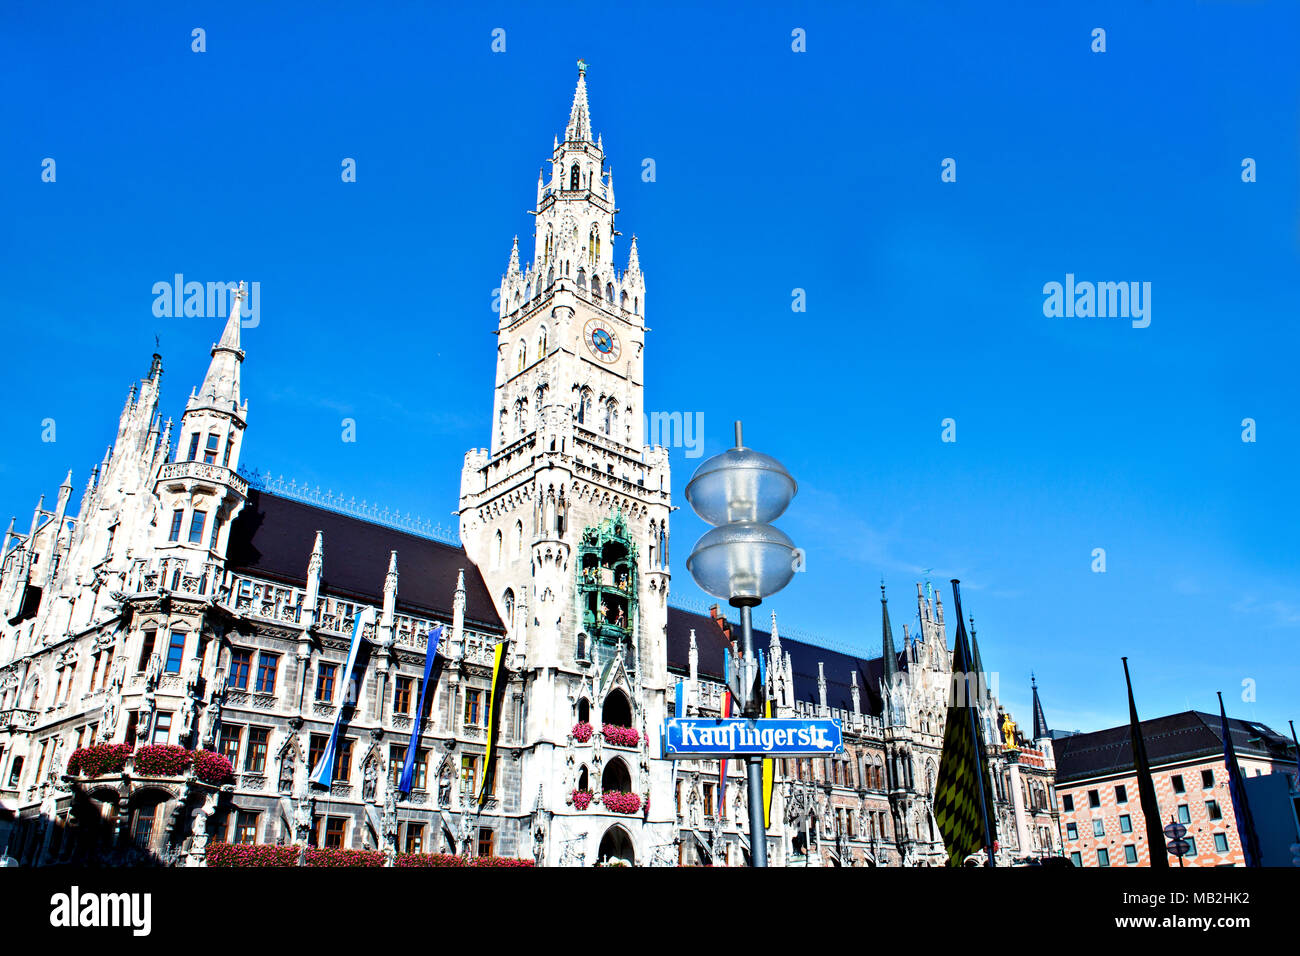 Town Hall on Marienplatz square in Munich, Germany - Stock Image